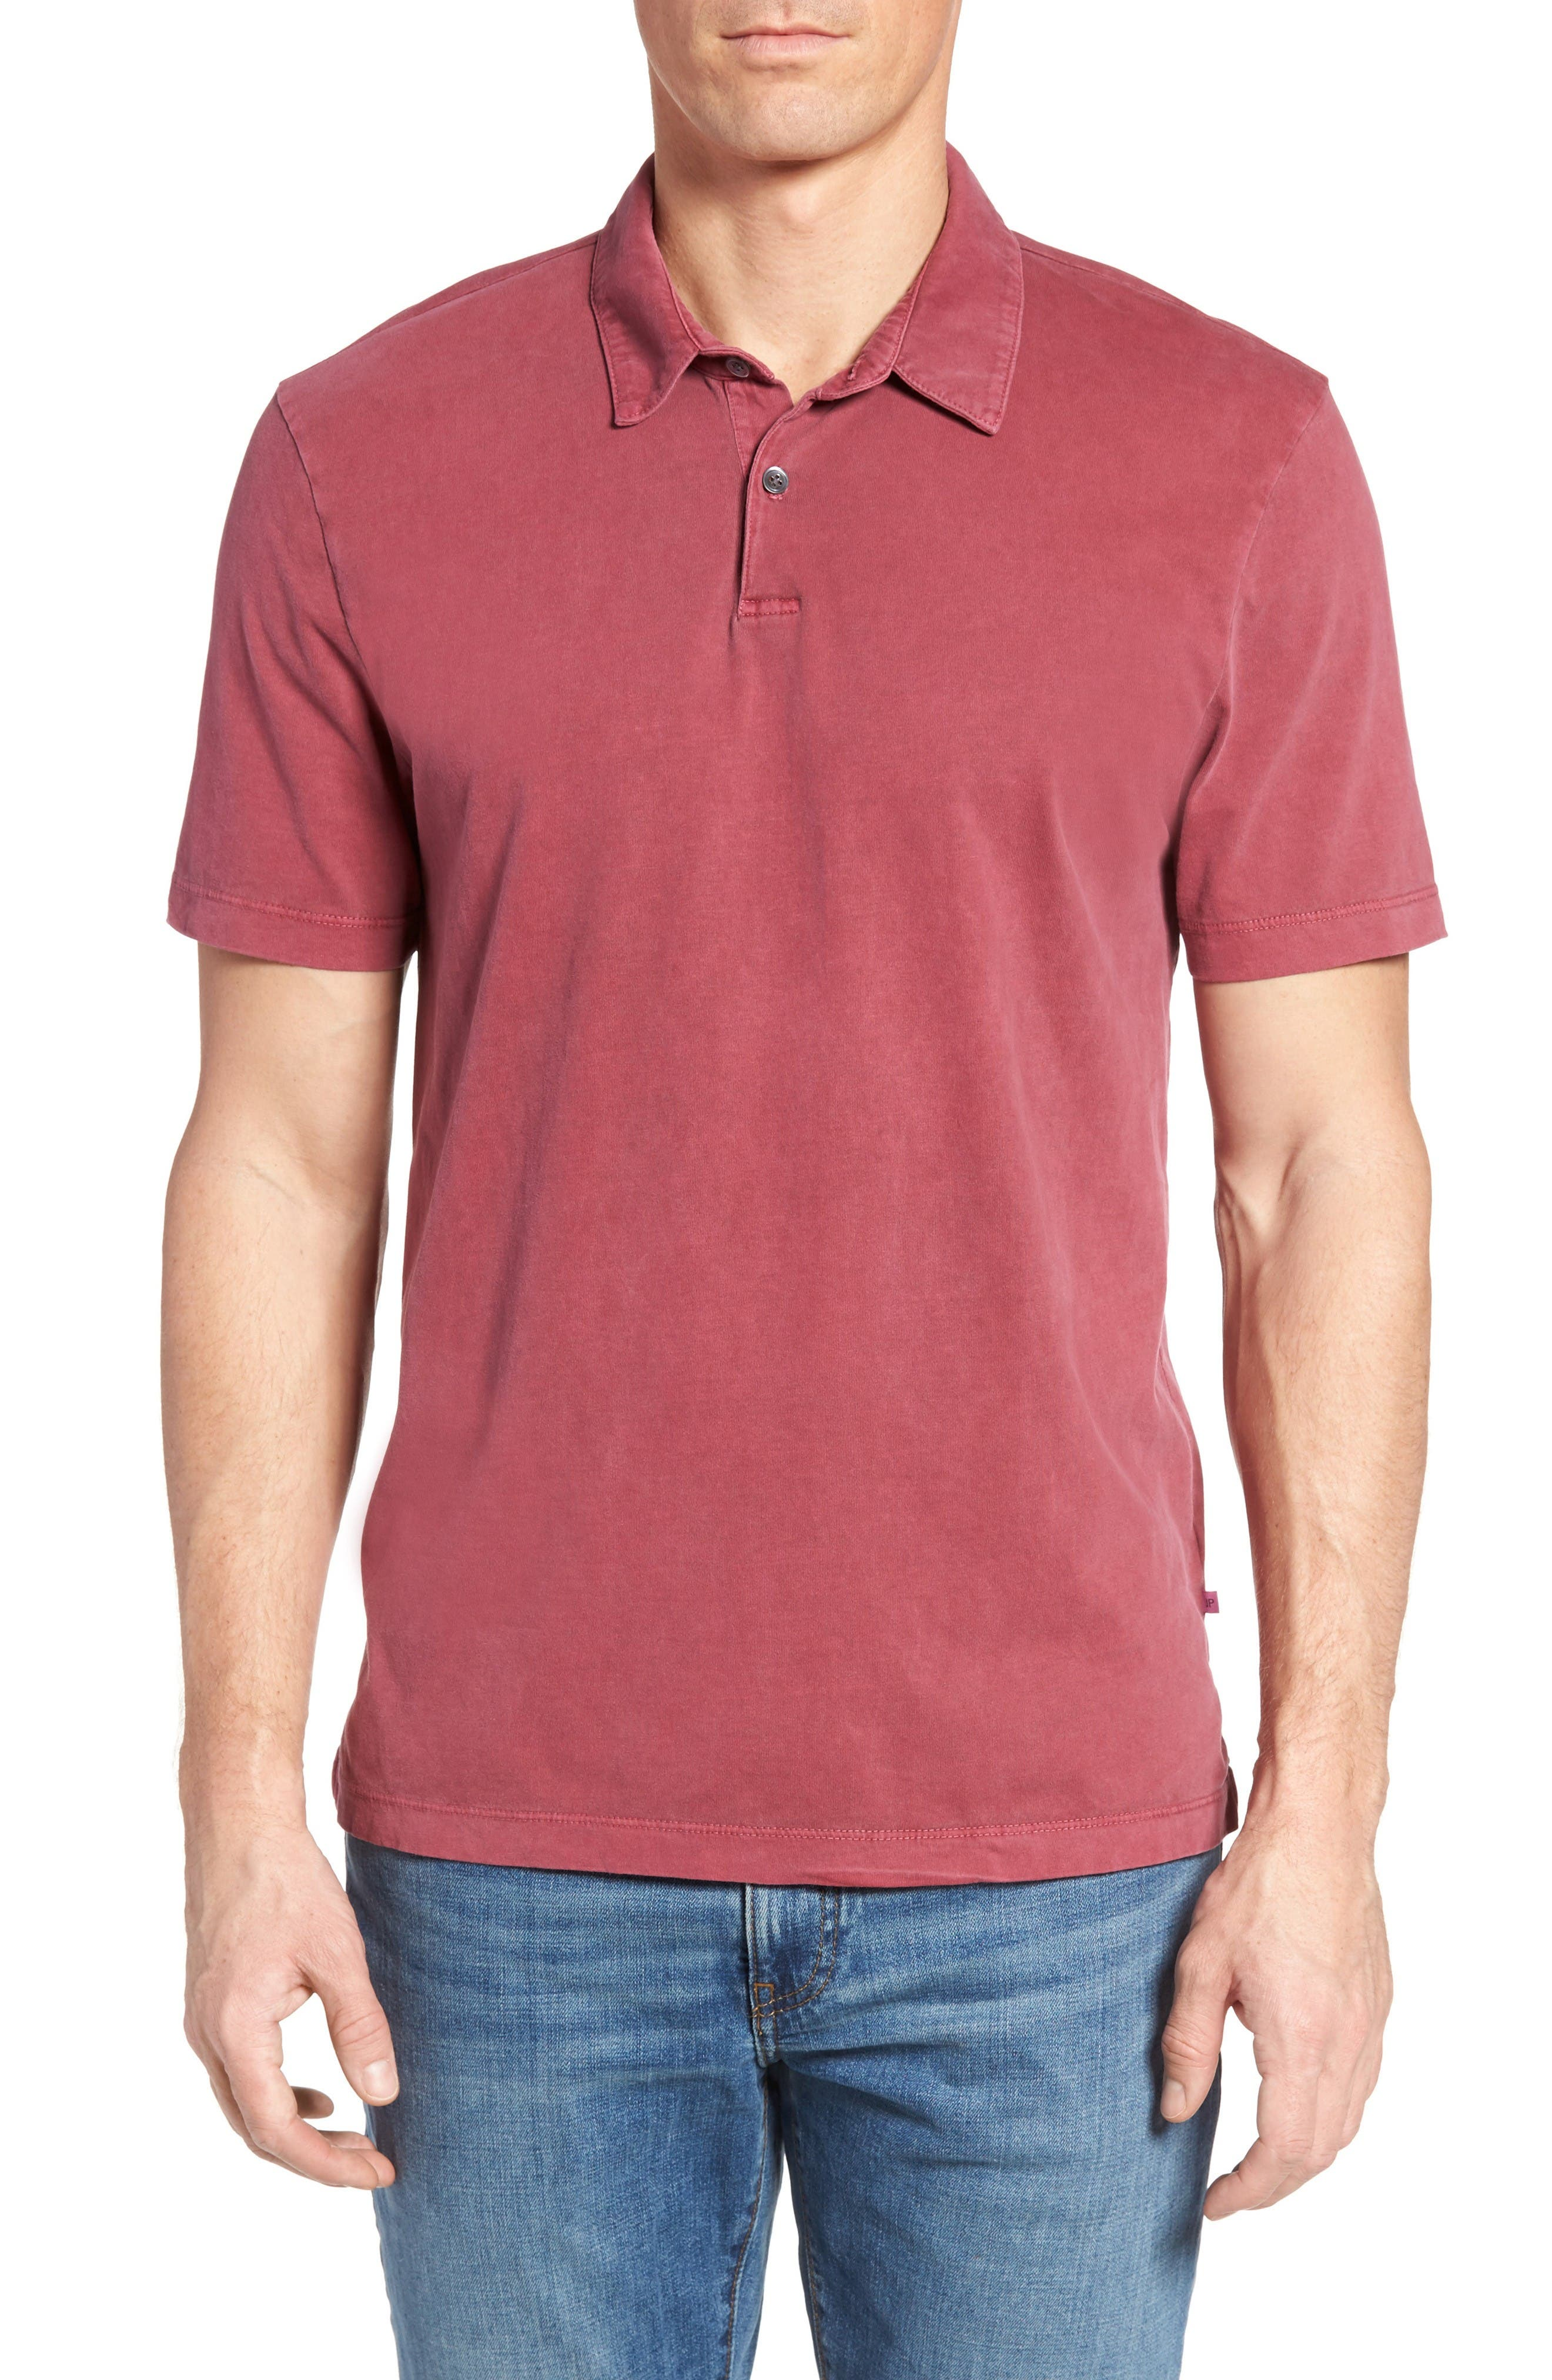 Alternate Image 1 Selected - James Perse Slim Fit Sueded Jersey Polo